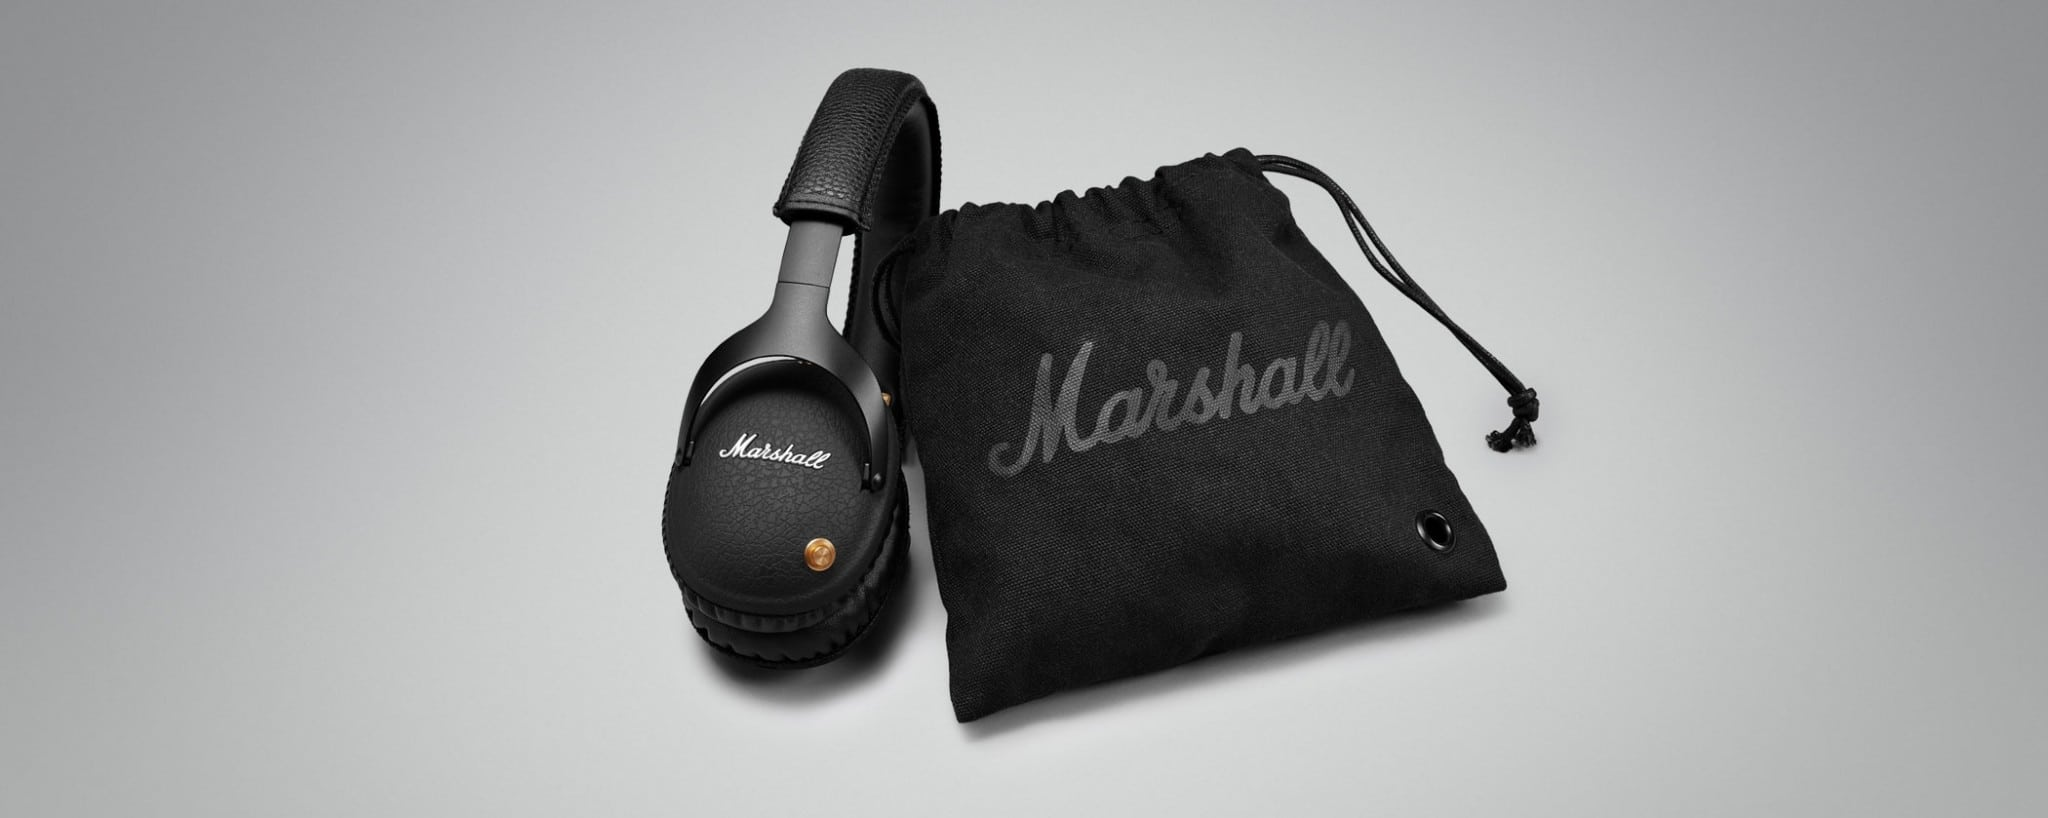 marshall_headphones_slide__monitor_bluetooth__06_3800